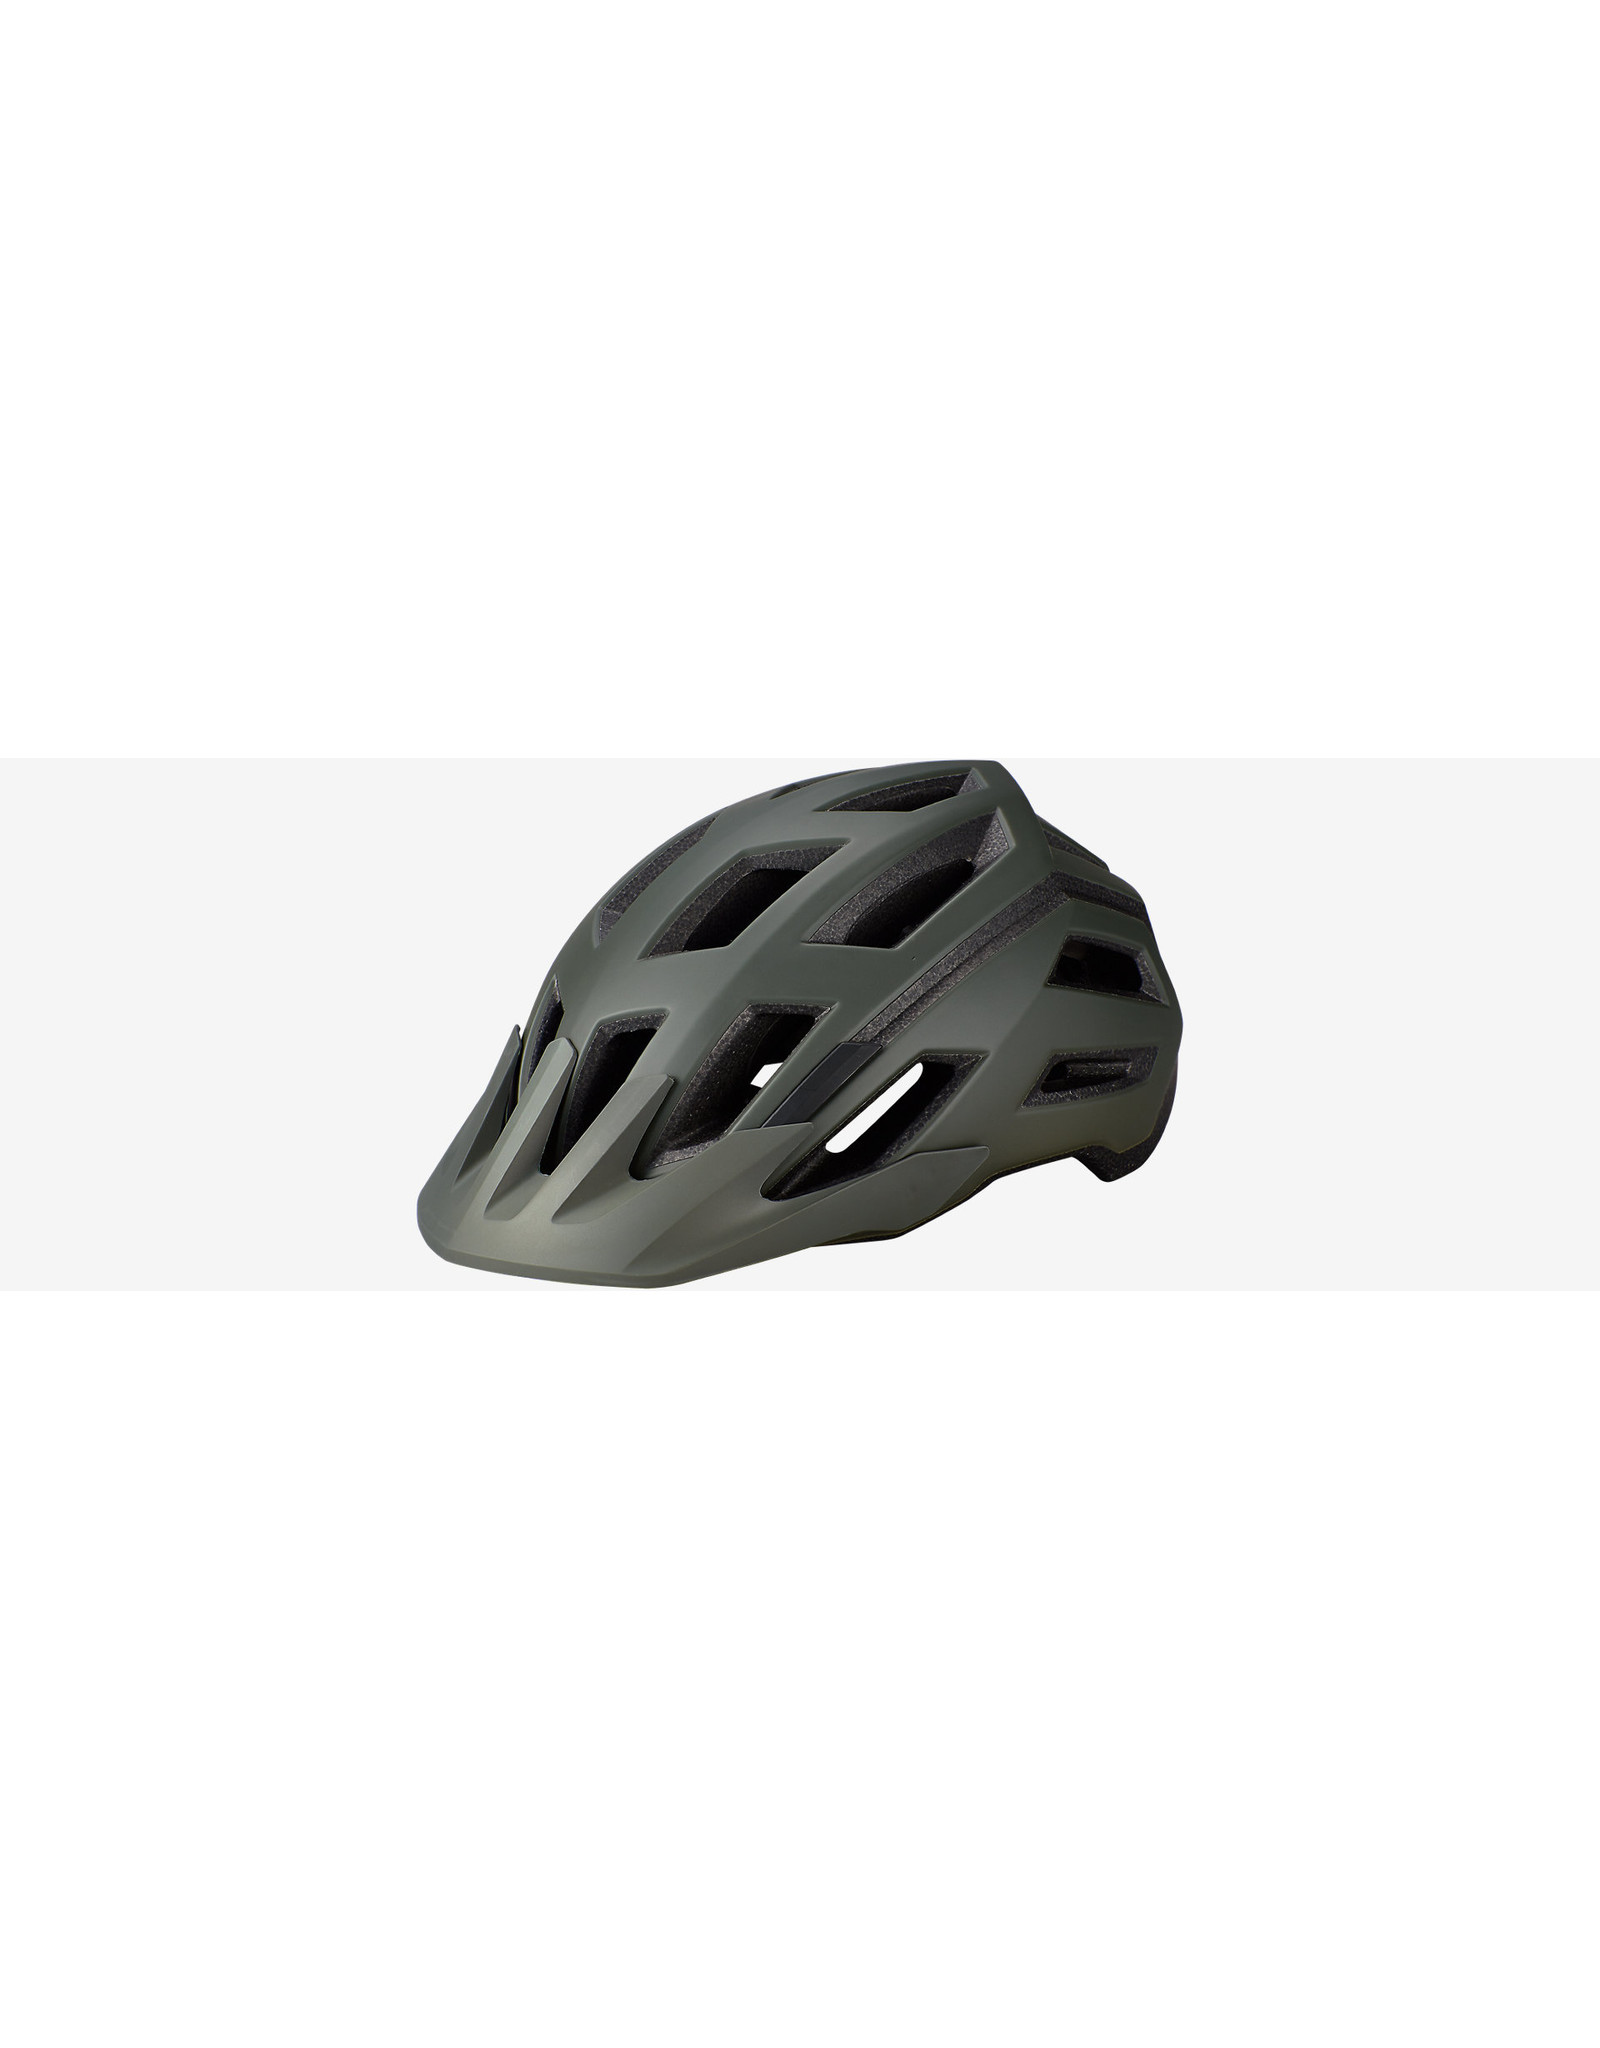 Specialized SPECIALIZED, Tactic 3 Mips, Helmet.